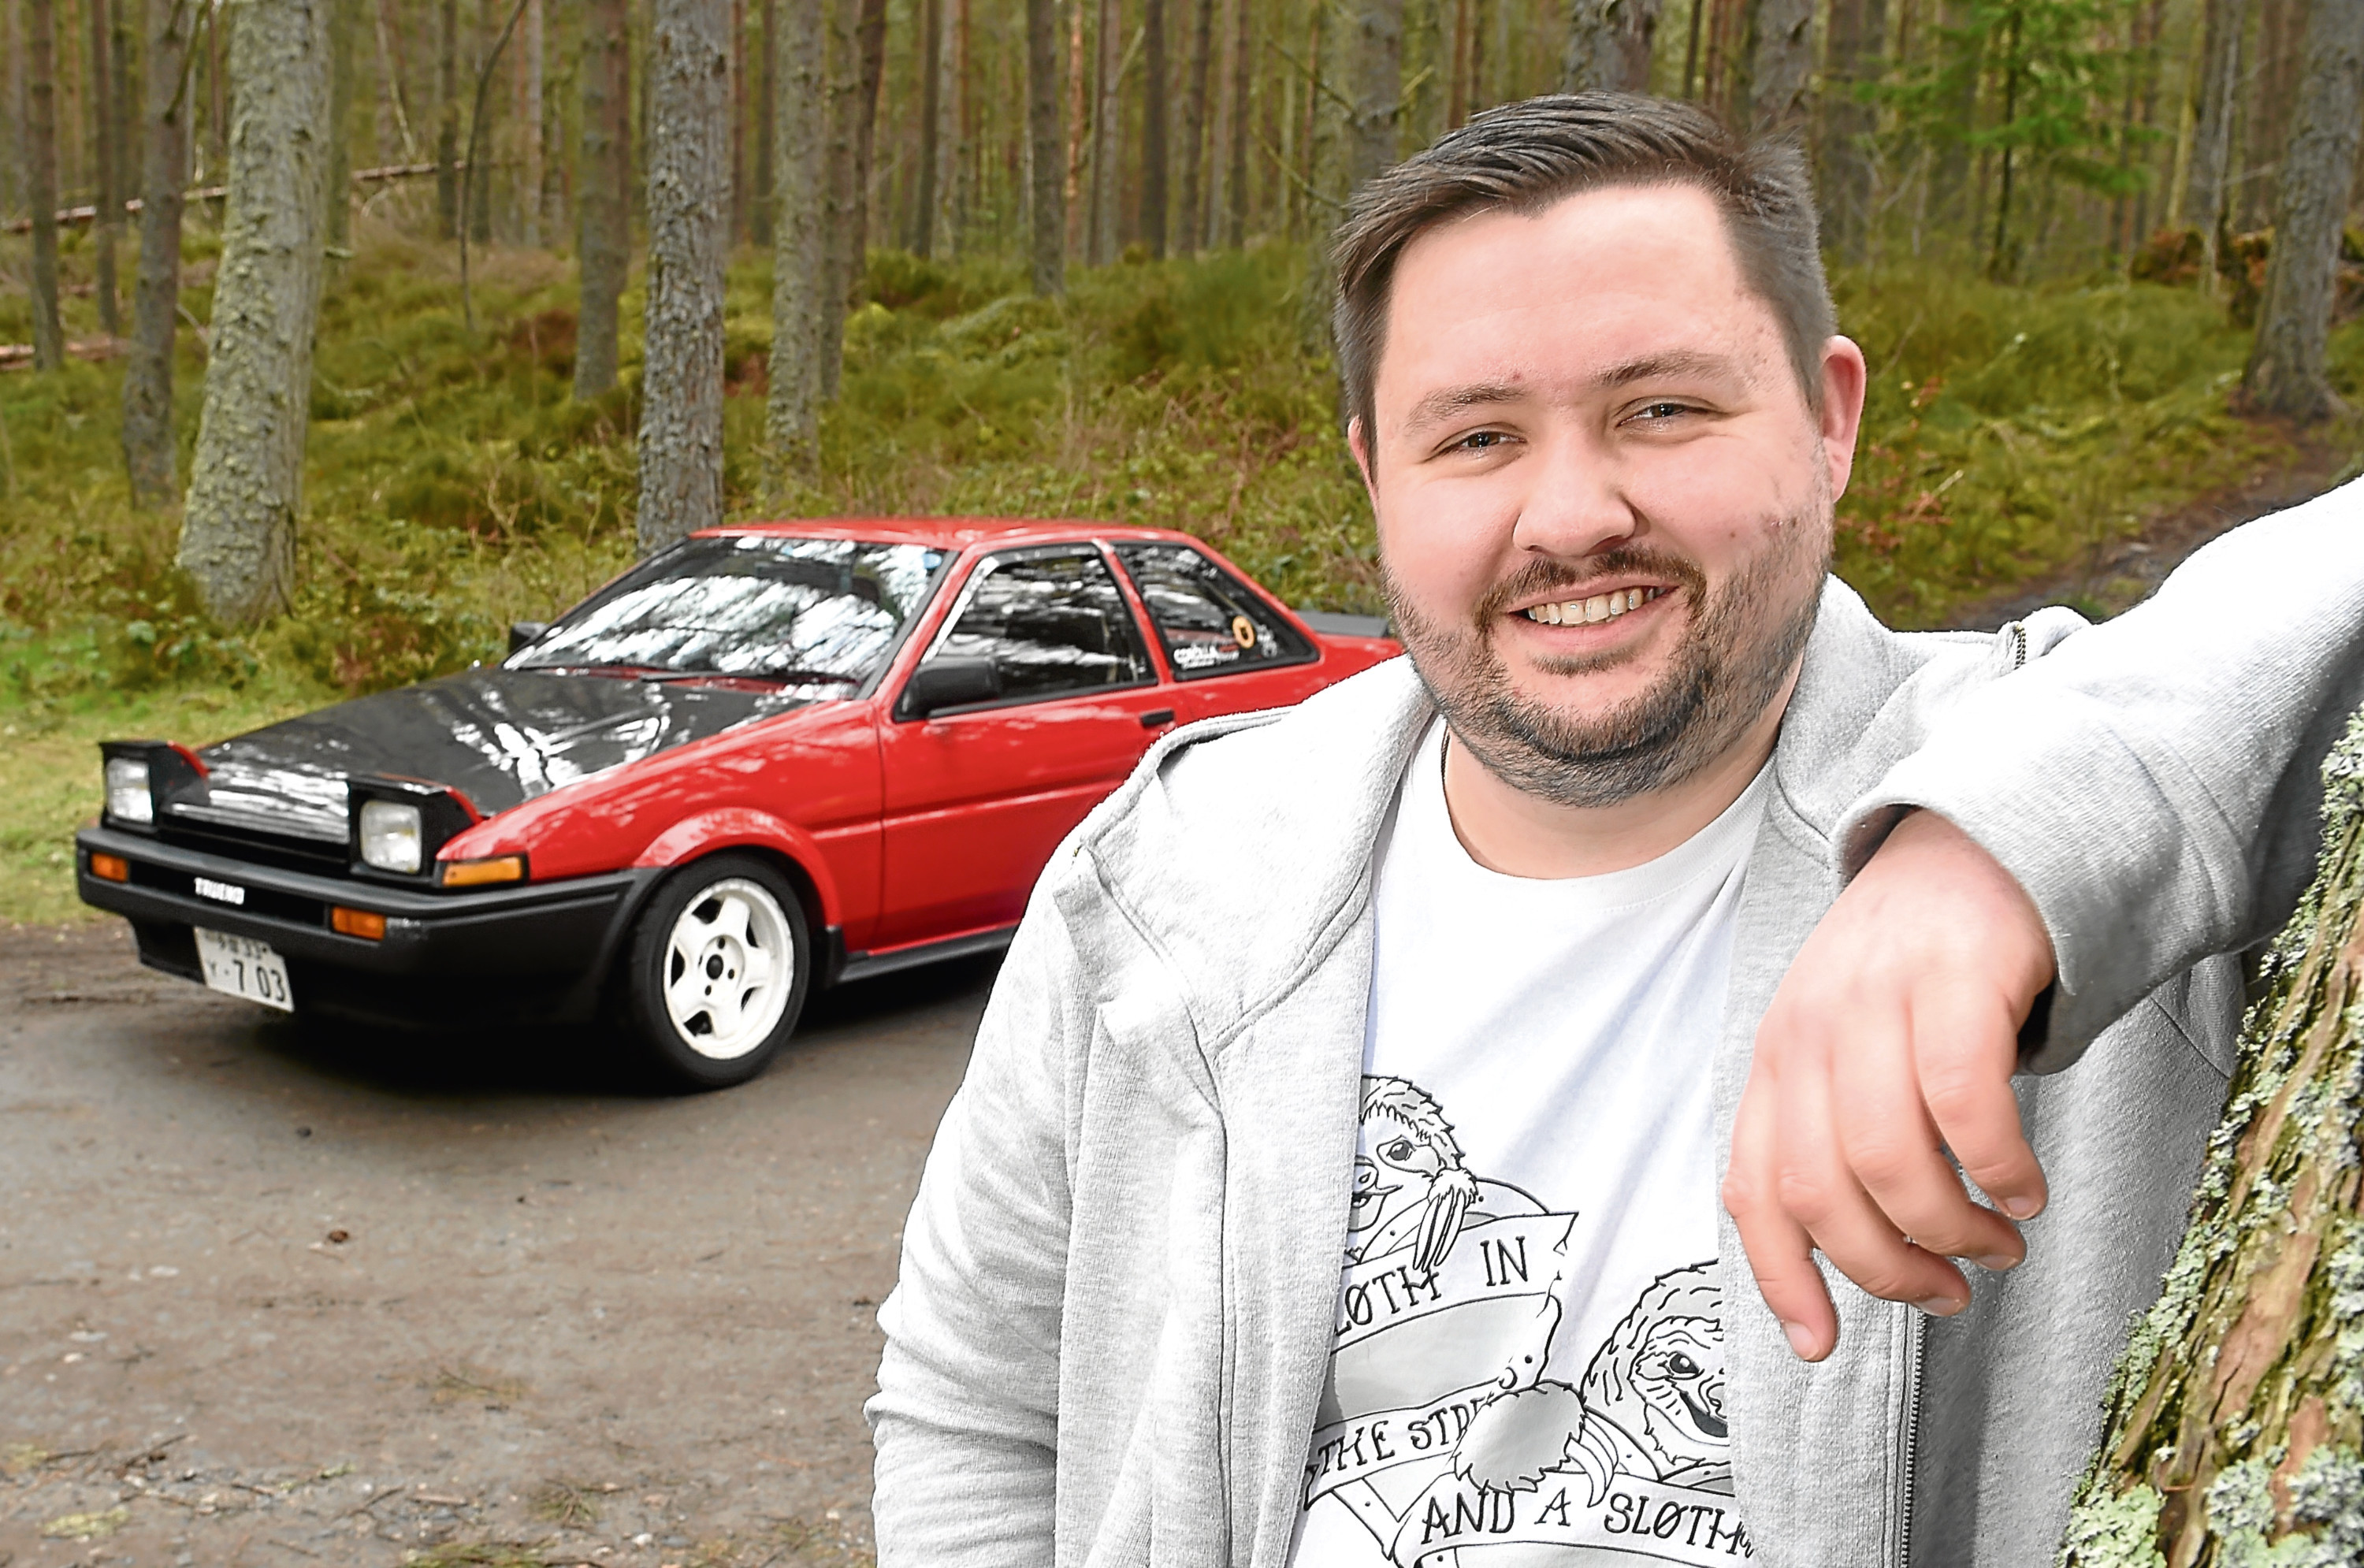 Callum Mcadam with his 1985 Toyota Sprinter Trueno that he bought in Japan and has restored himself